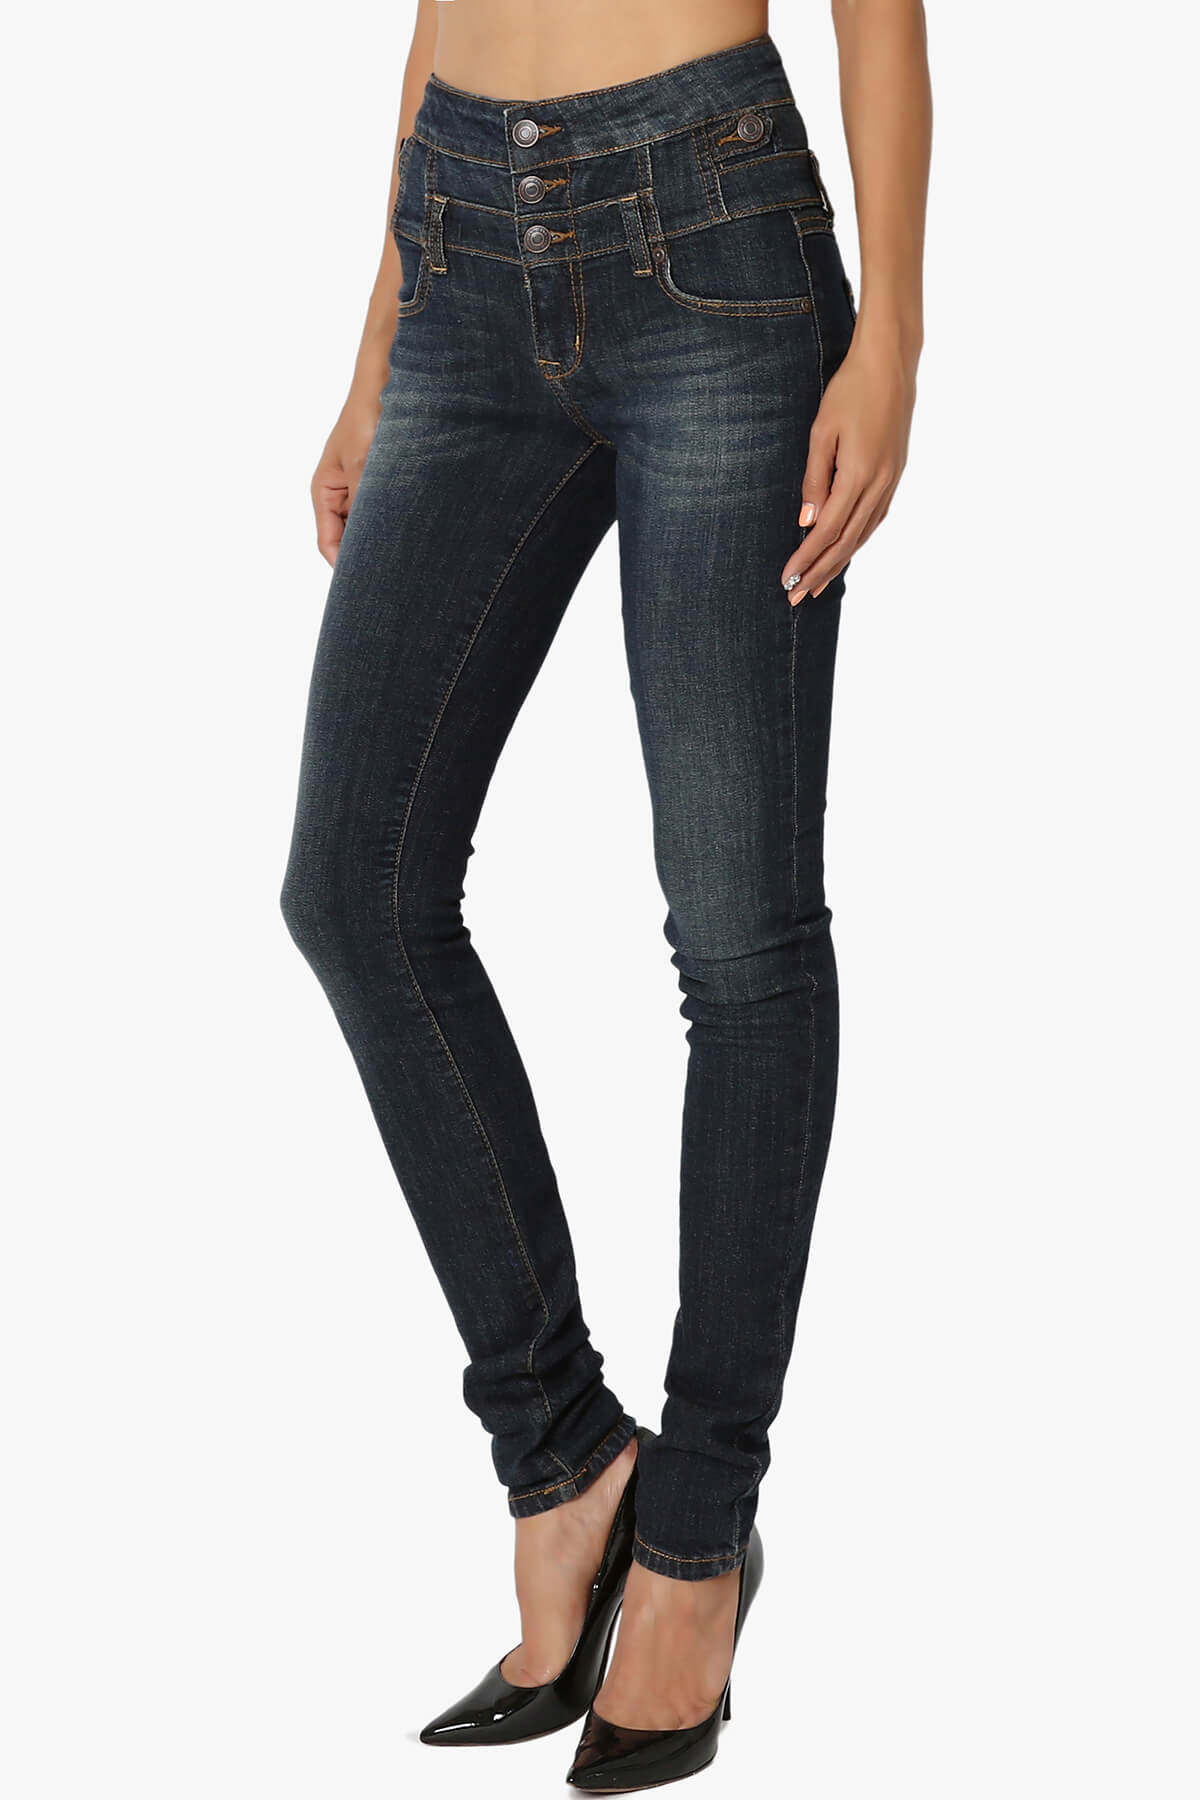 TheMogan High Waisted 3 Button Stretch Denim Skinny Jeans In Curvy ...